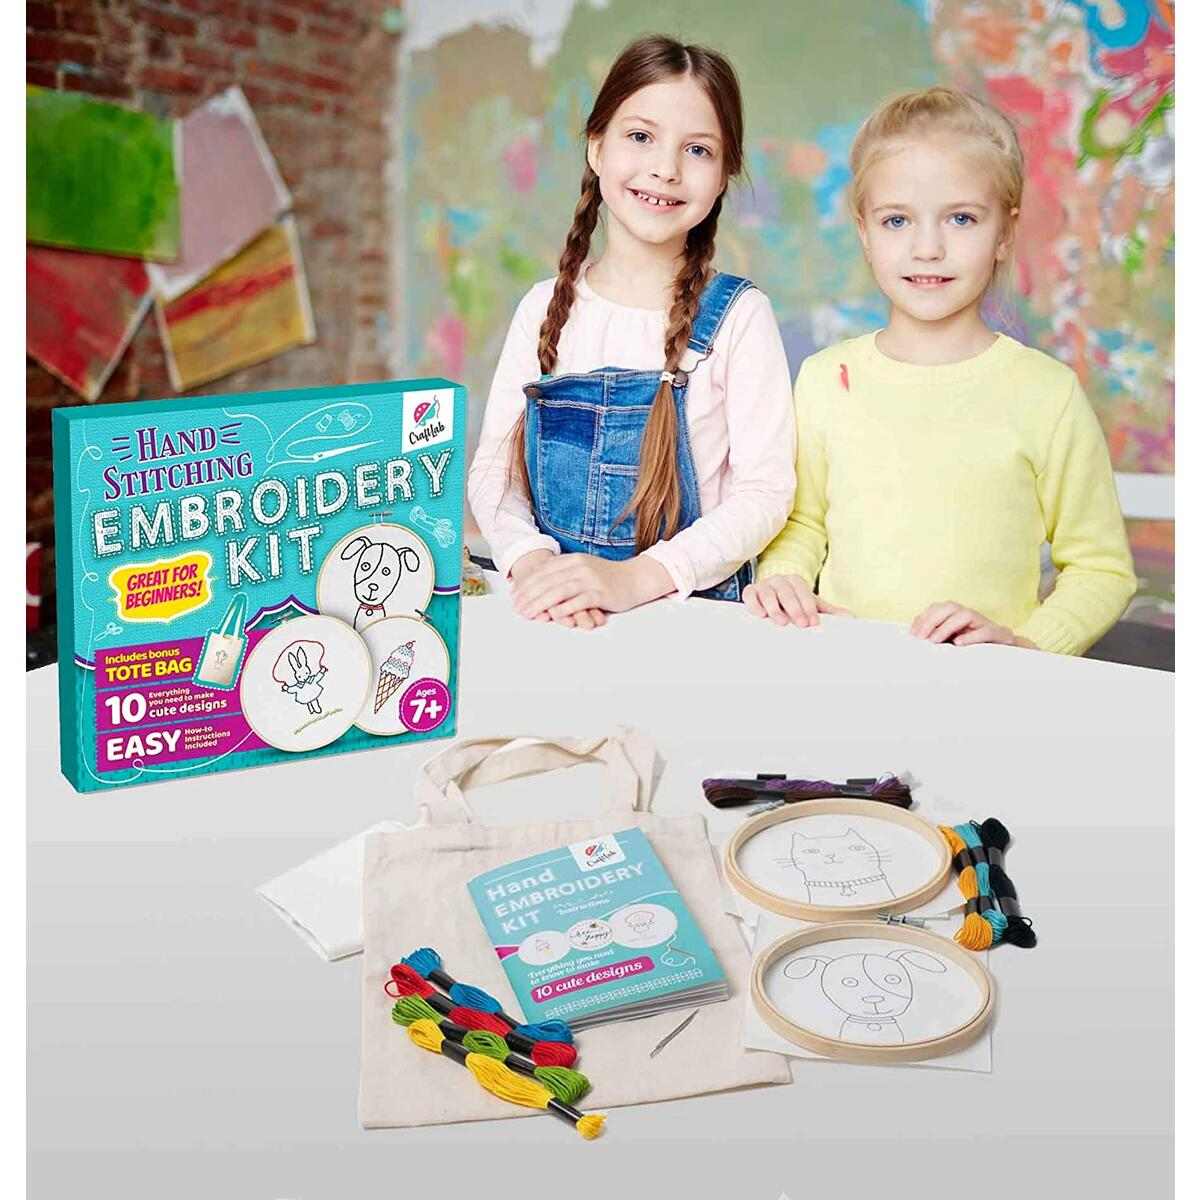 Embroidery Kit for Beginners